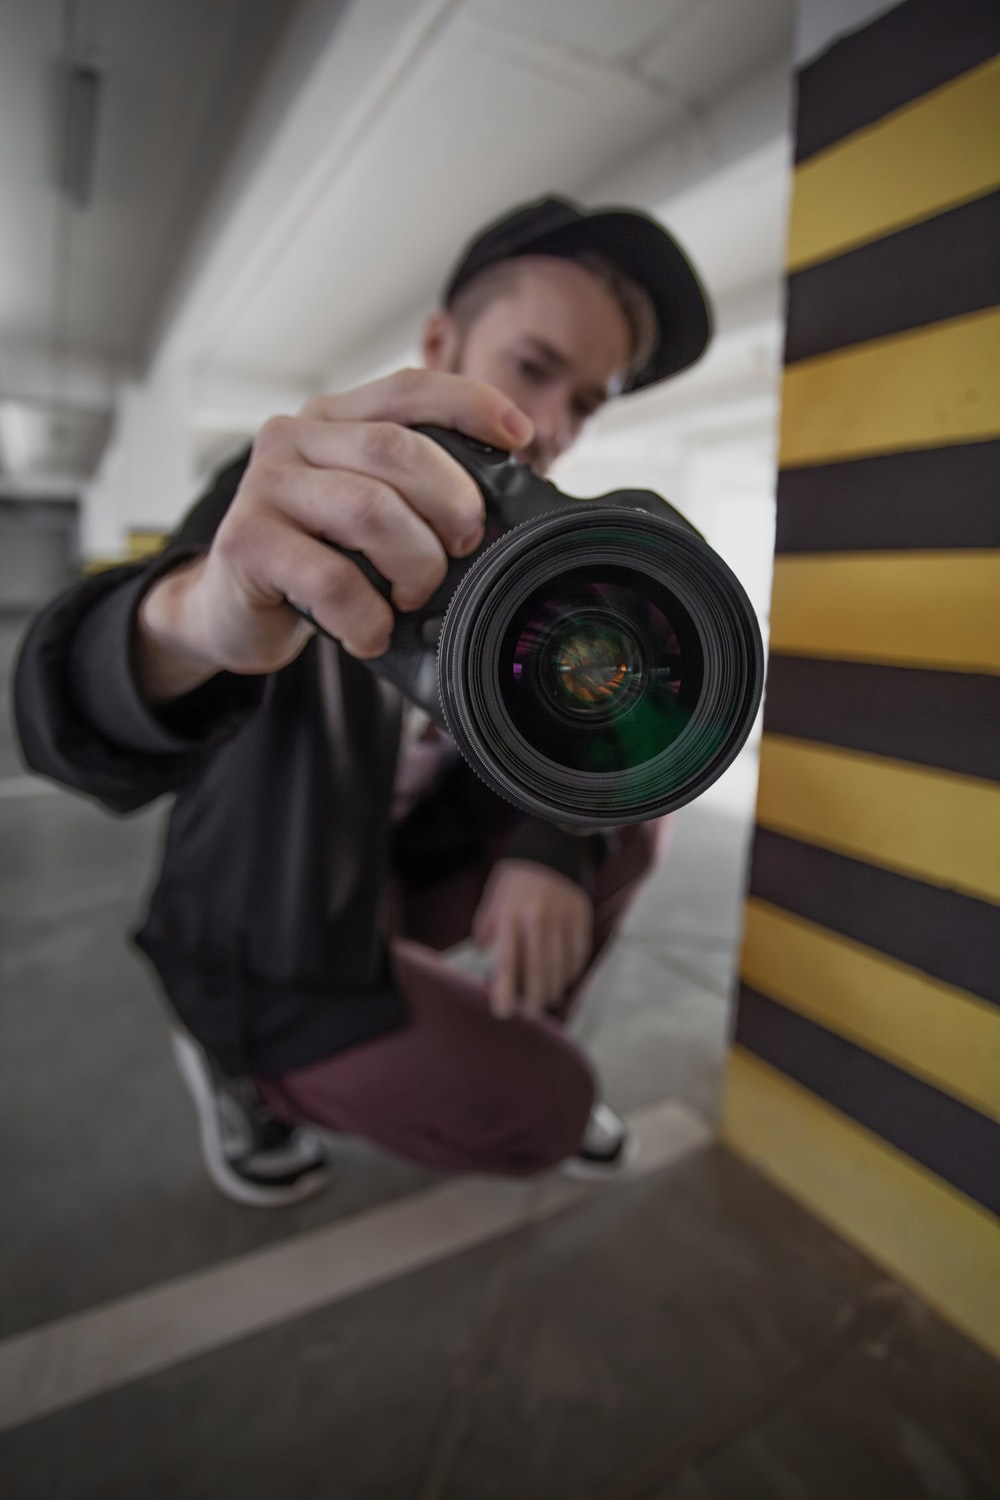 man in black and yellow striped long sleeve shirt holding black camera lens